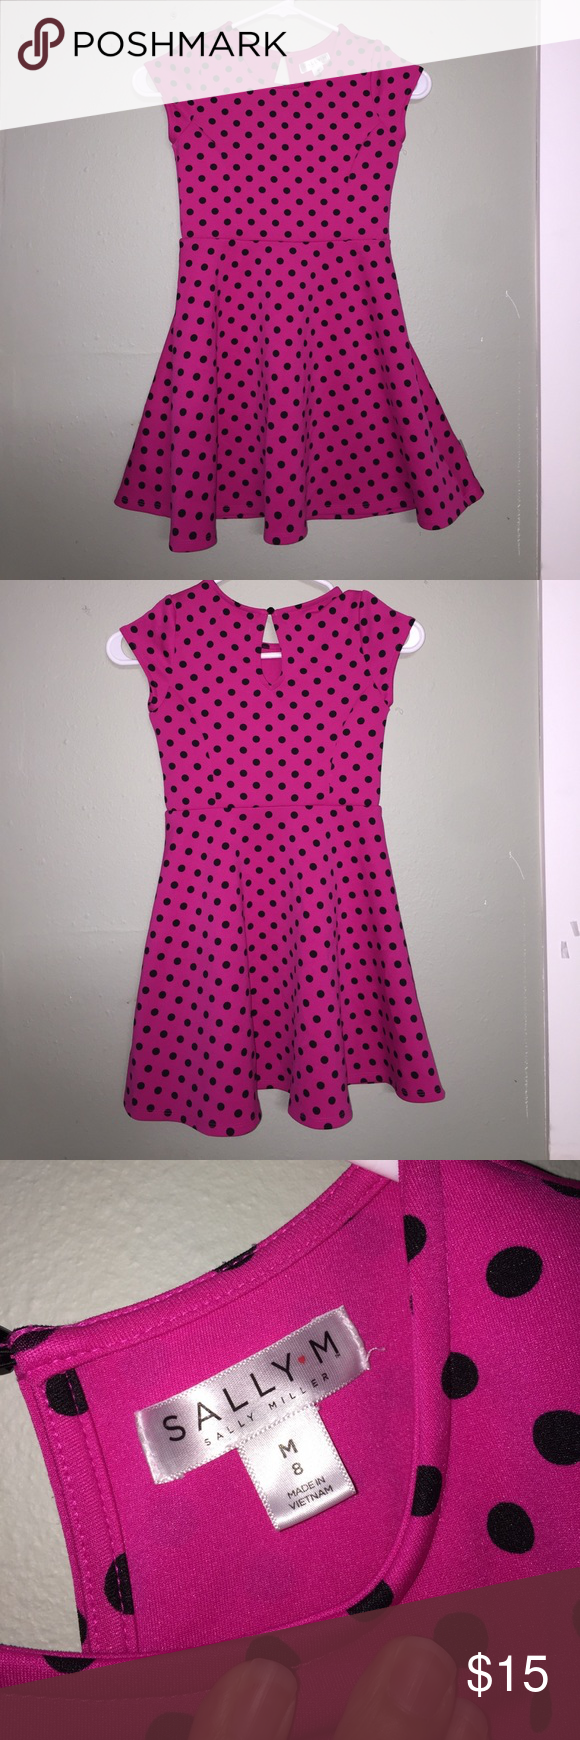 Sally Miller kids dress Sally Miller pink with black poke a dots size 8 in kids dress. Worn once but in great condition. Sally Miller Dresses Casual #sallymiller Sally Miller kids dress Sally Miller pink with black poke a dots size 8 in kids dress. Worn once but in great condition. Sally Miller Dresses Casual #sallymiller Sally Miller kids dress Sally Miller pink with black poke a dots size 8 in kids dress. Worn once but in great condition. Sally Miller Dresses Casual #sallymiller Sally Miller k #sallymiller